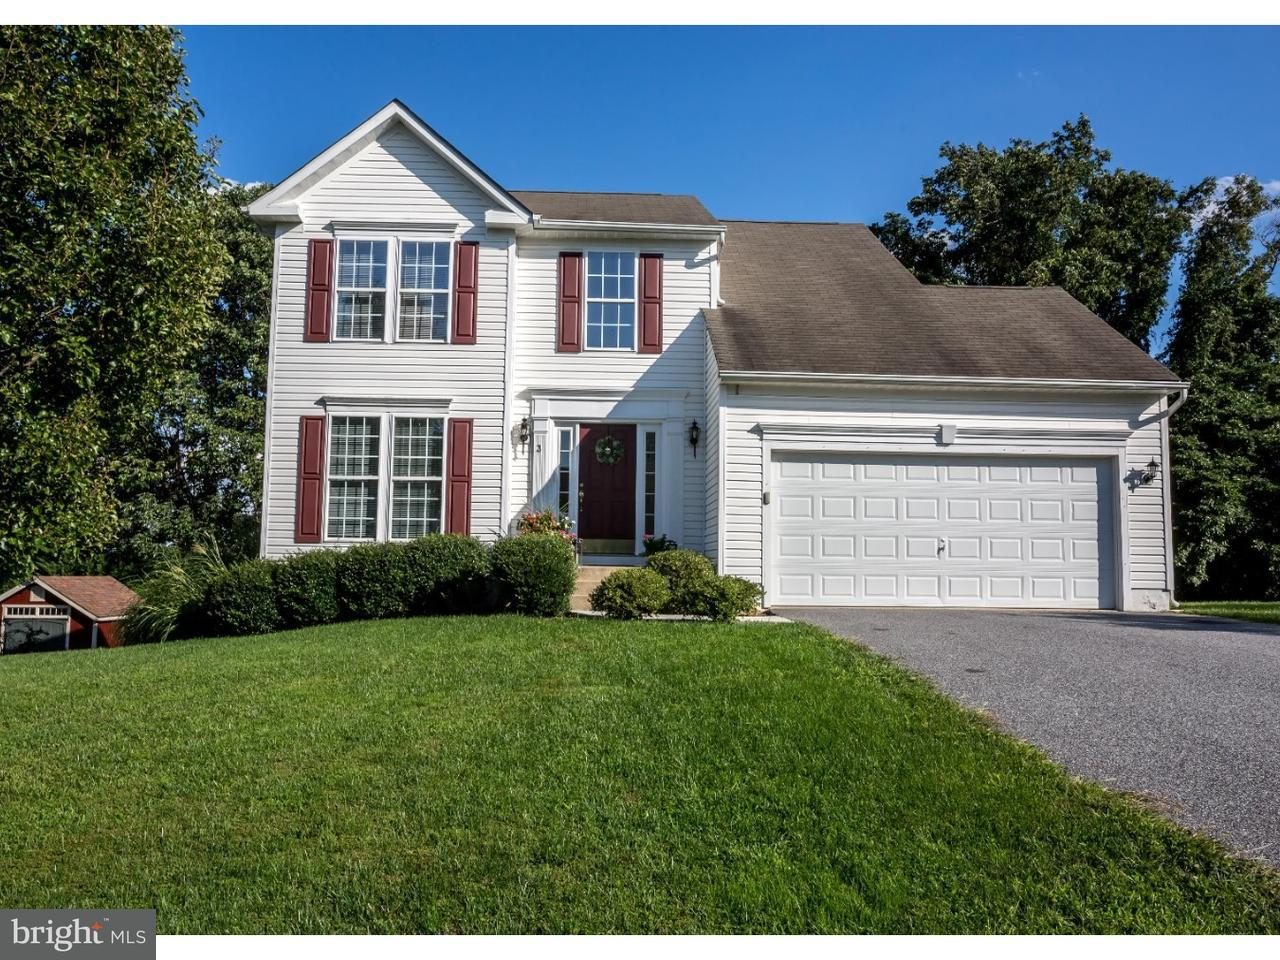 Single Family Home for Sale at 3 HUNTINGTON Court Boothwyn, Pennsylvania 19061 United States